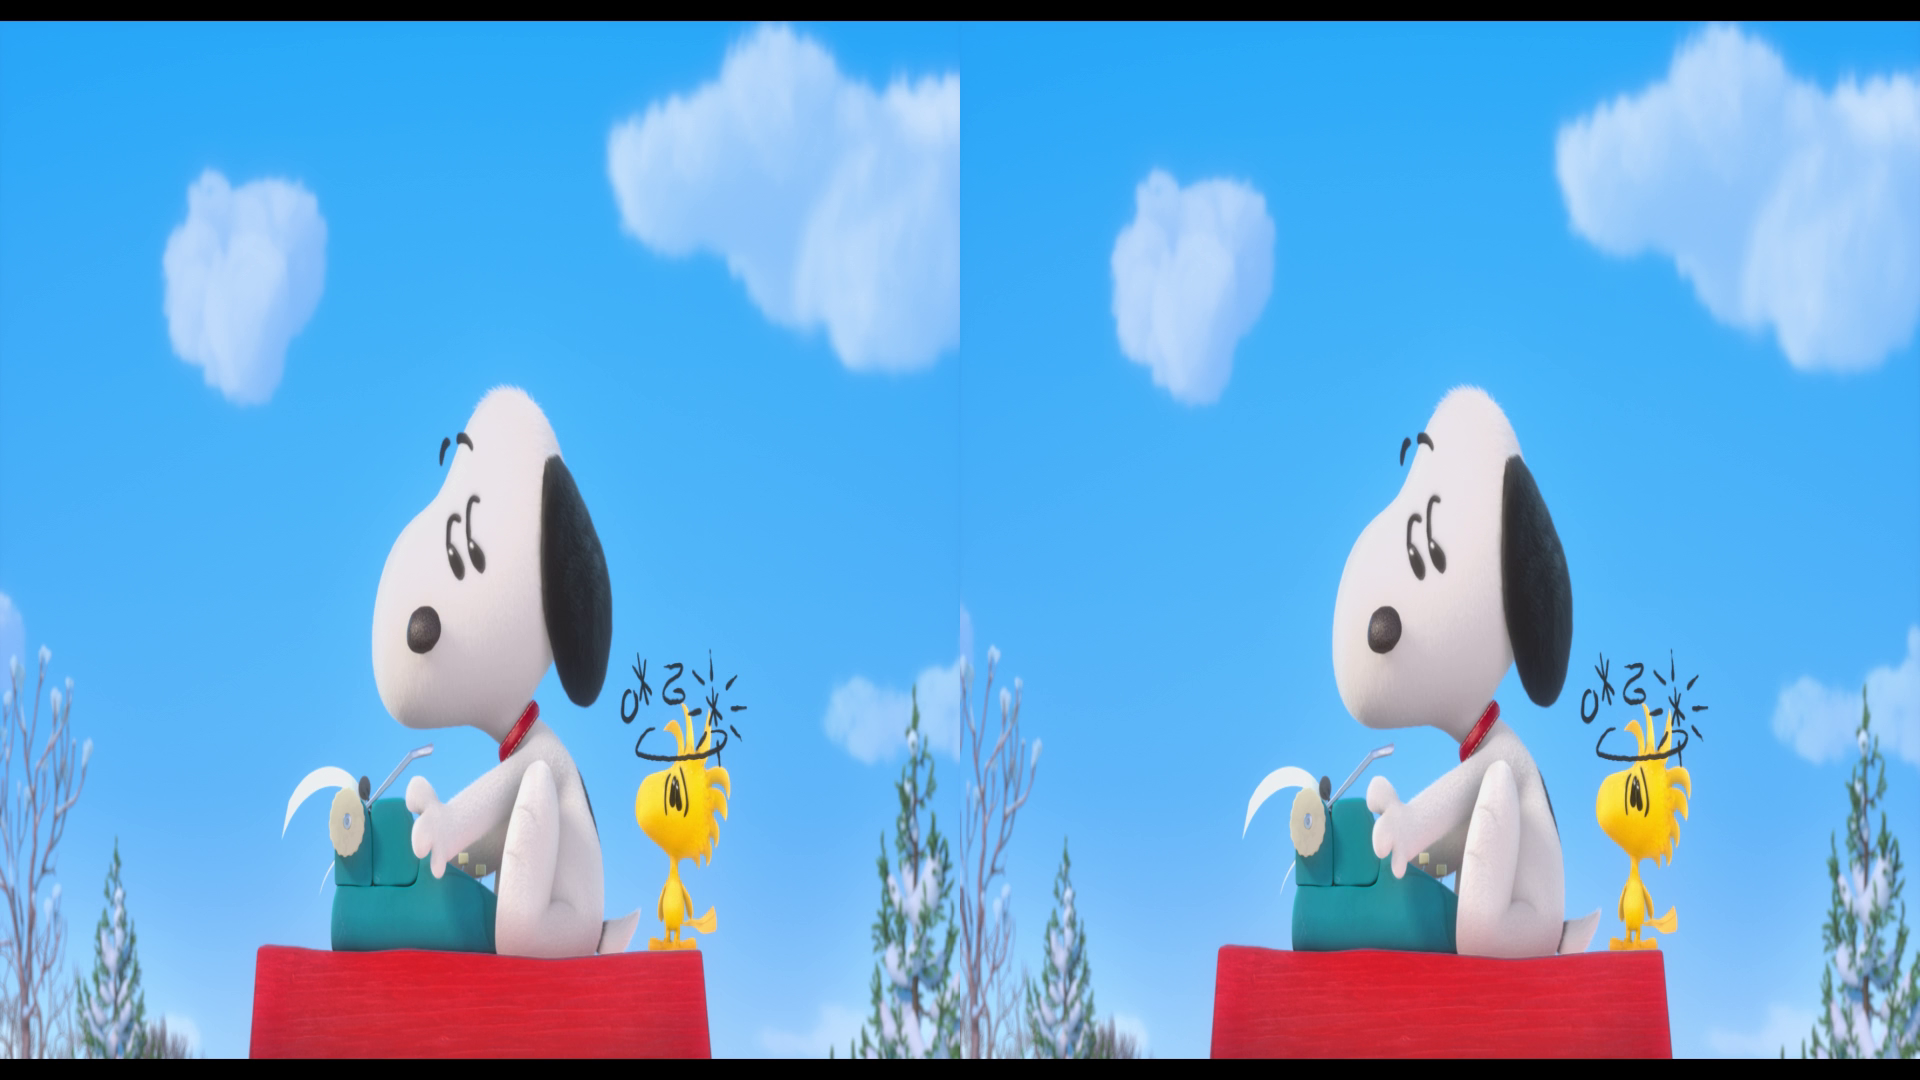 Snoopy ve Charlie Brown: Peanuts Filmi 3D - 3D The Peanuts Movie | 2015 | 3D BluRay Hal-SBS 1080p | DuaL TR-EN - Tek Link